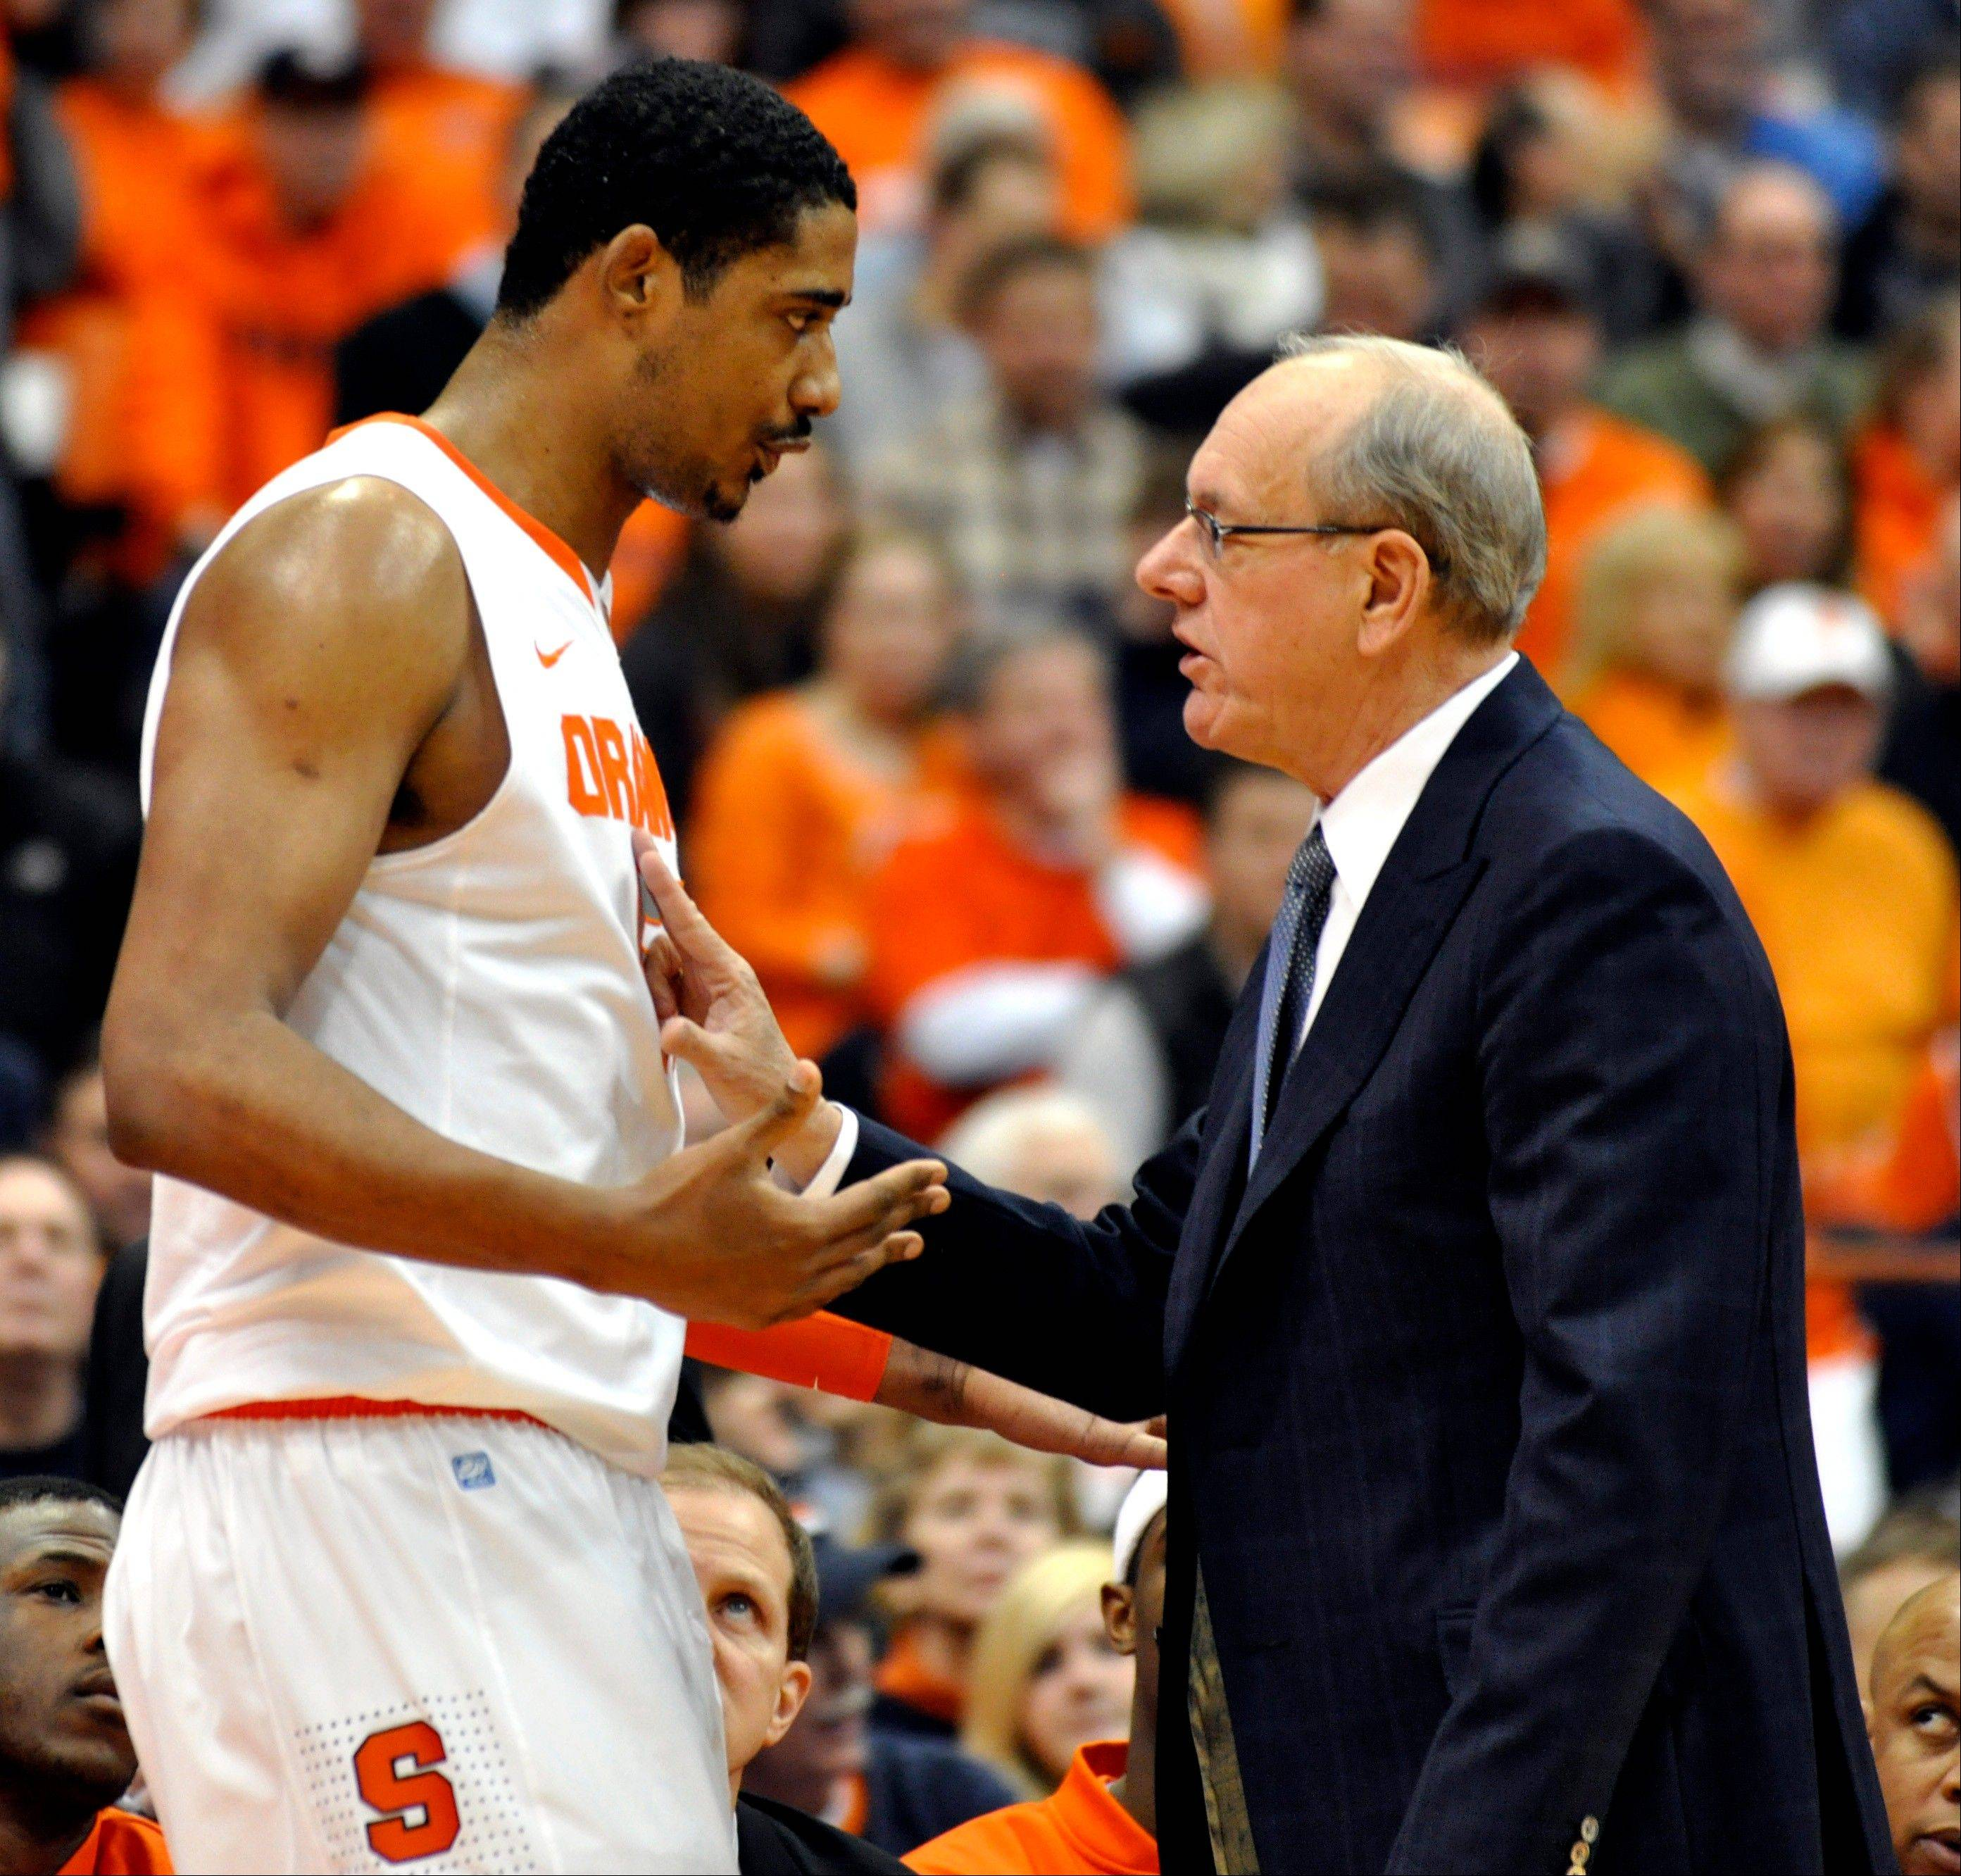 Syracuse head coach Jim Boeheim, right, talks with Fab Melo against Cincinnati. Melo did not travel with the team to Pittsburgh and the university says he won't take part in the NCAA tournament due to an eligibility issue. The school would not elaborate.